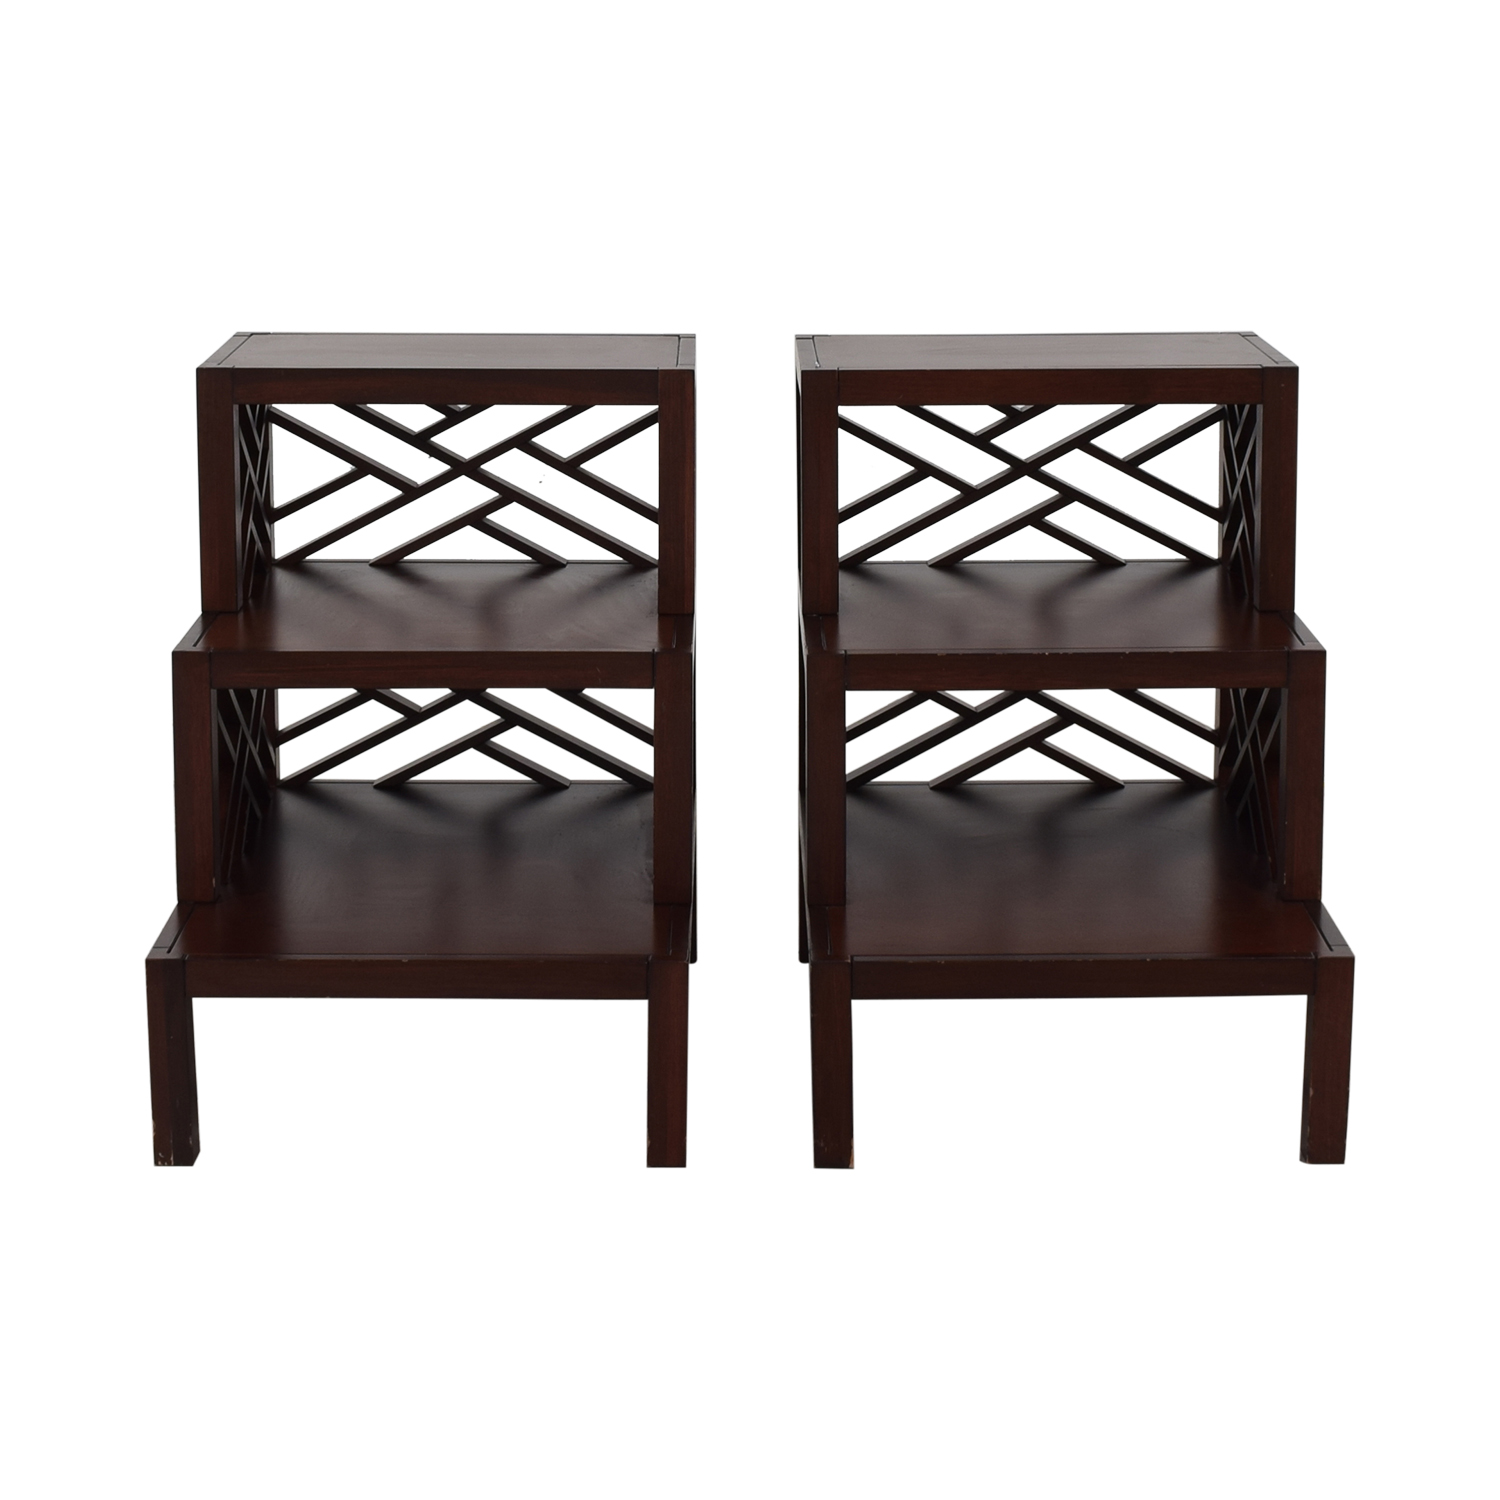 Williams Sonoma Williams Sonoma Accent Tables dimensions